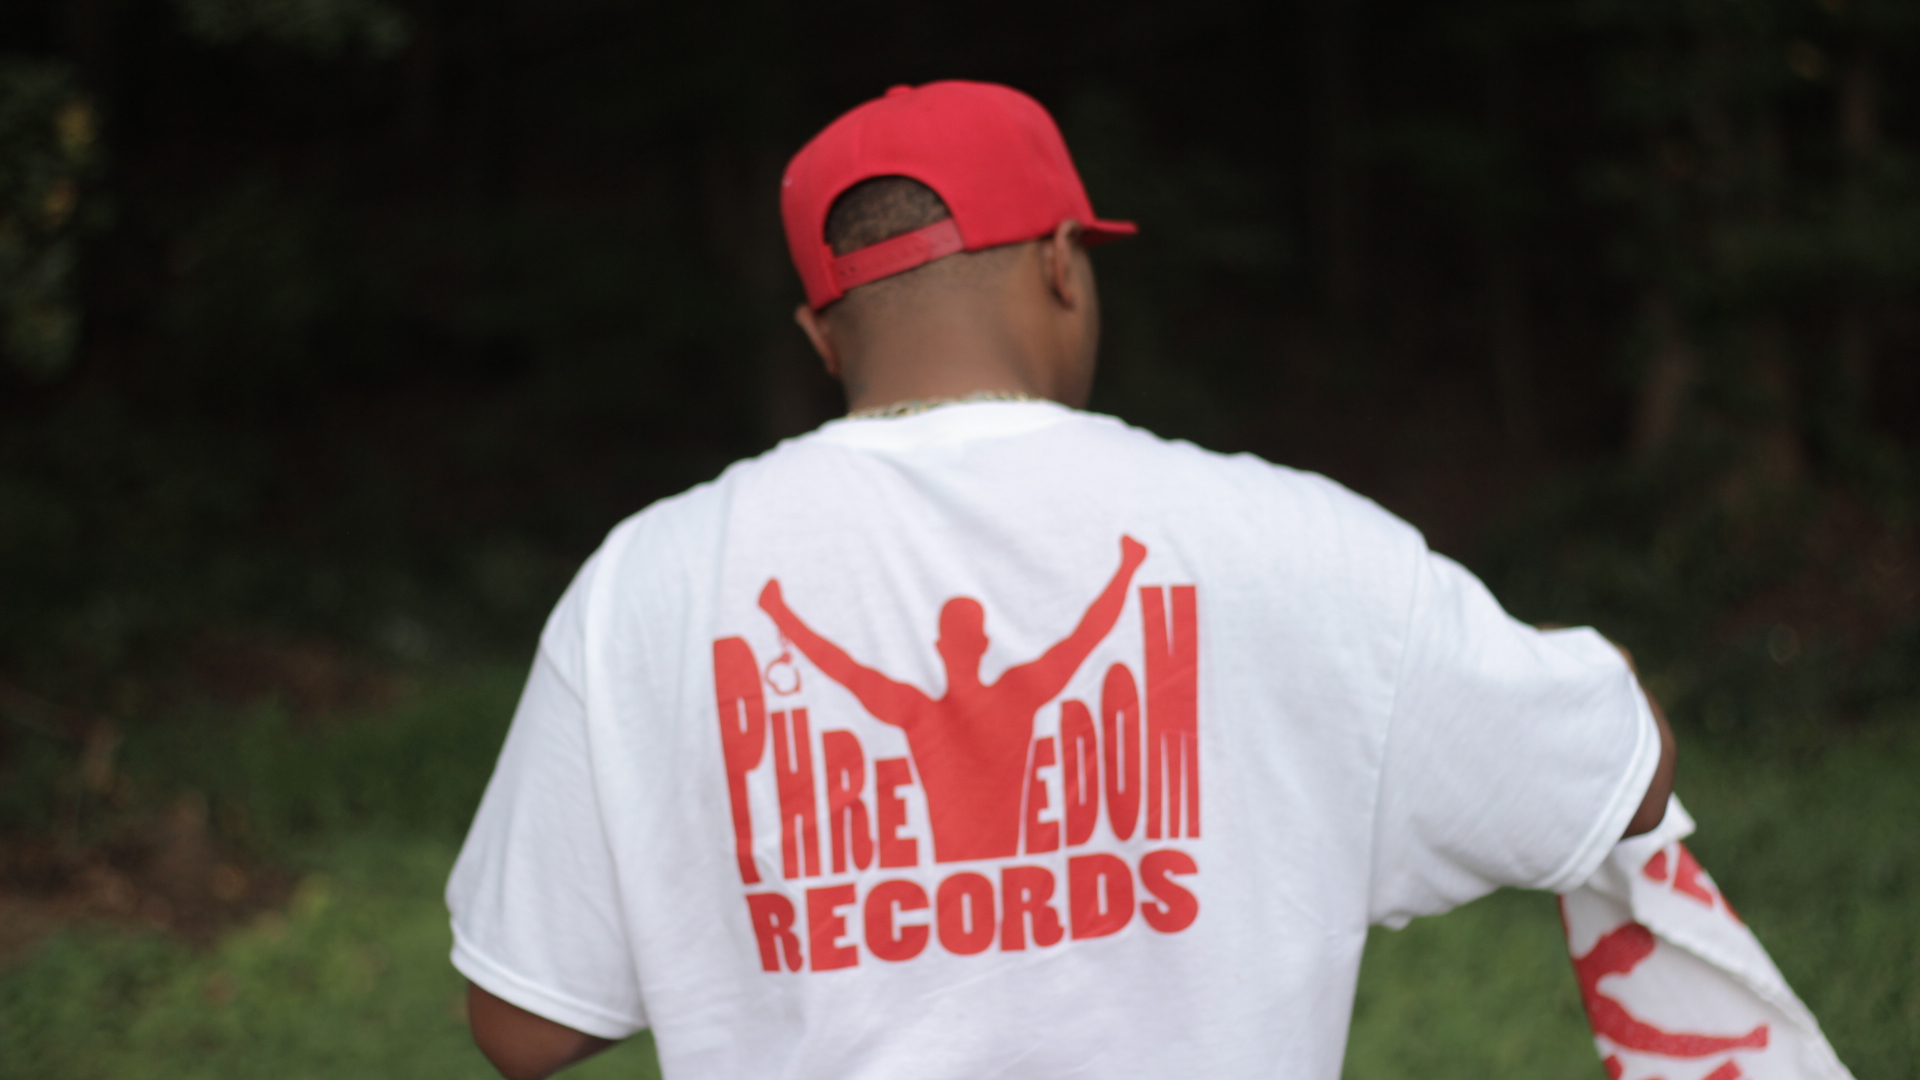 Phreedom Records